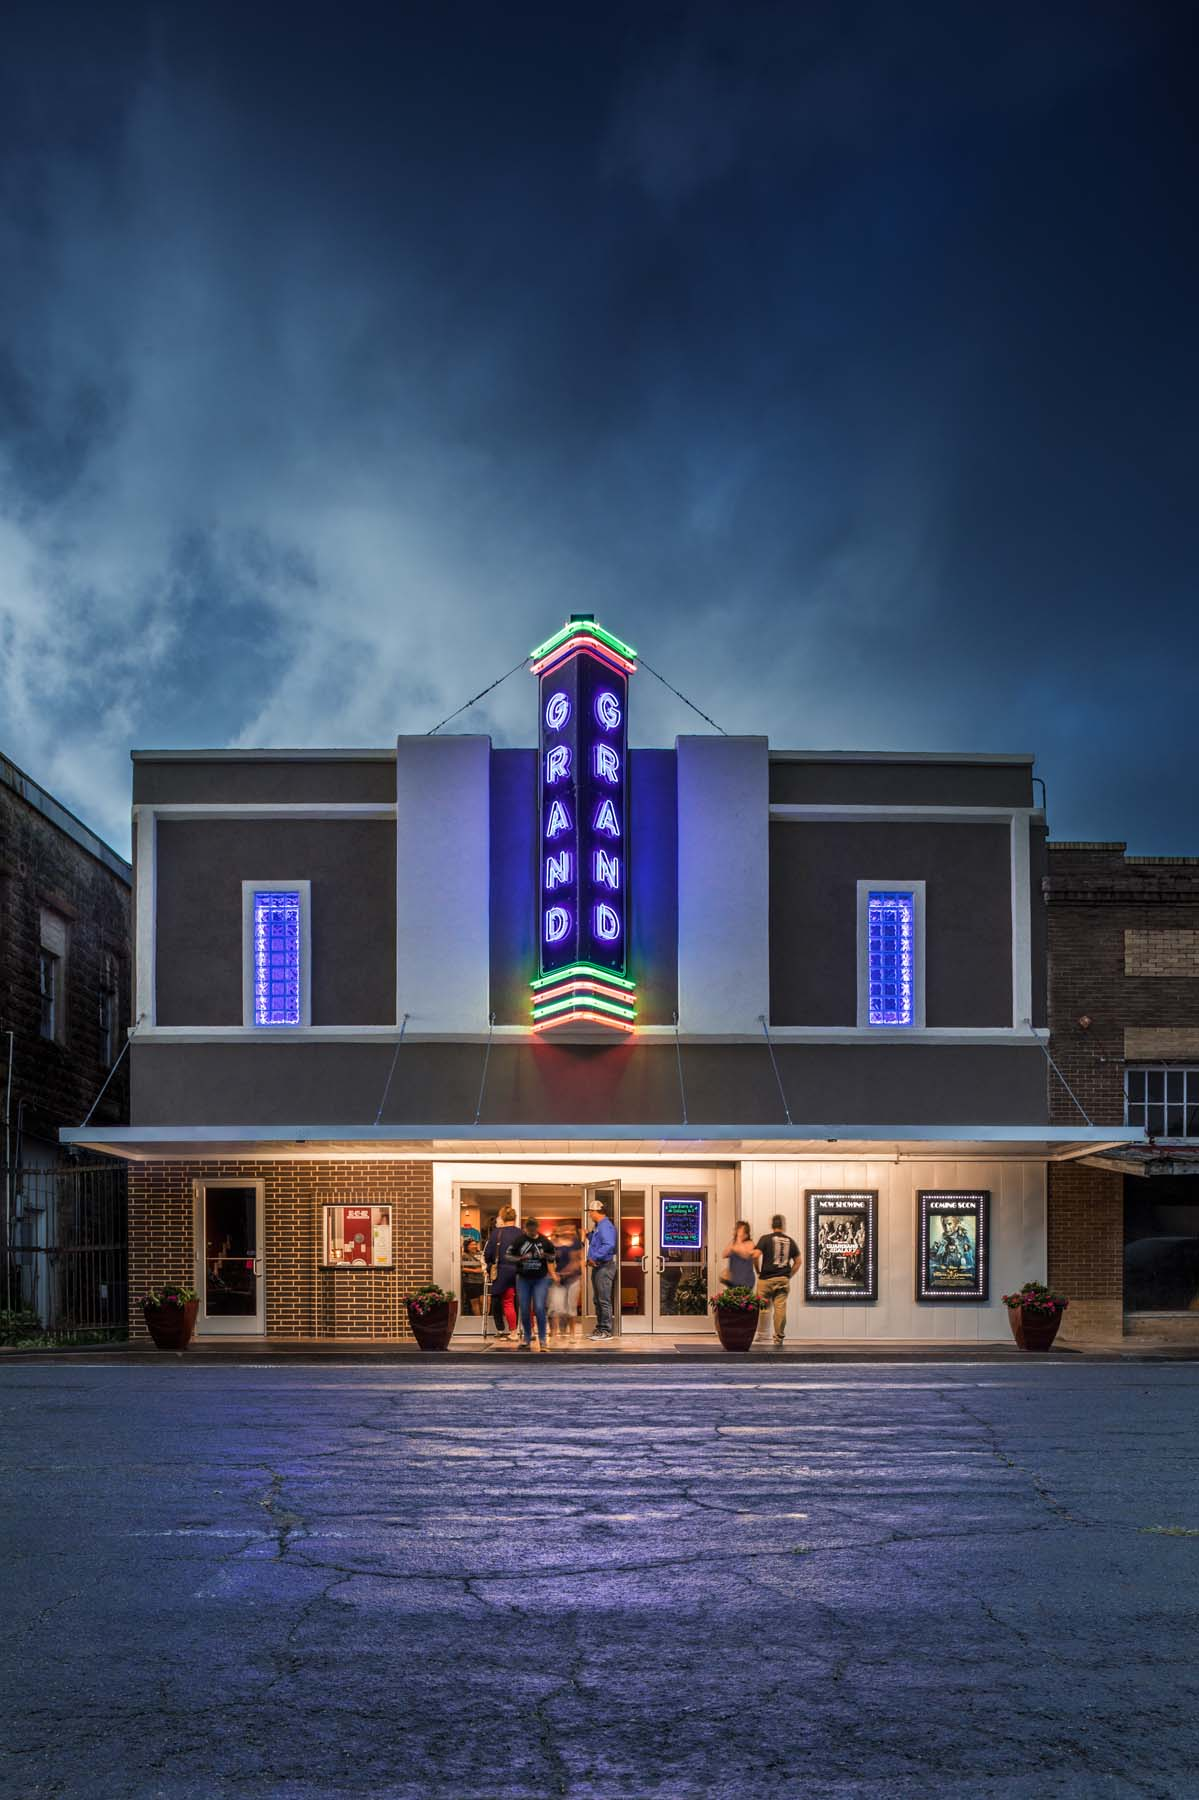 GRAND THEATER, YOKUM, TX